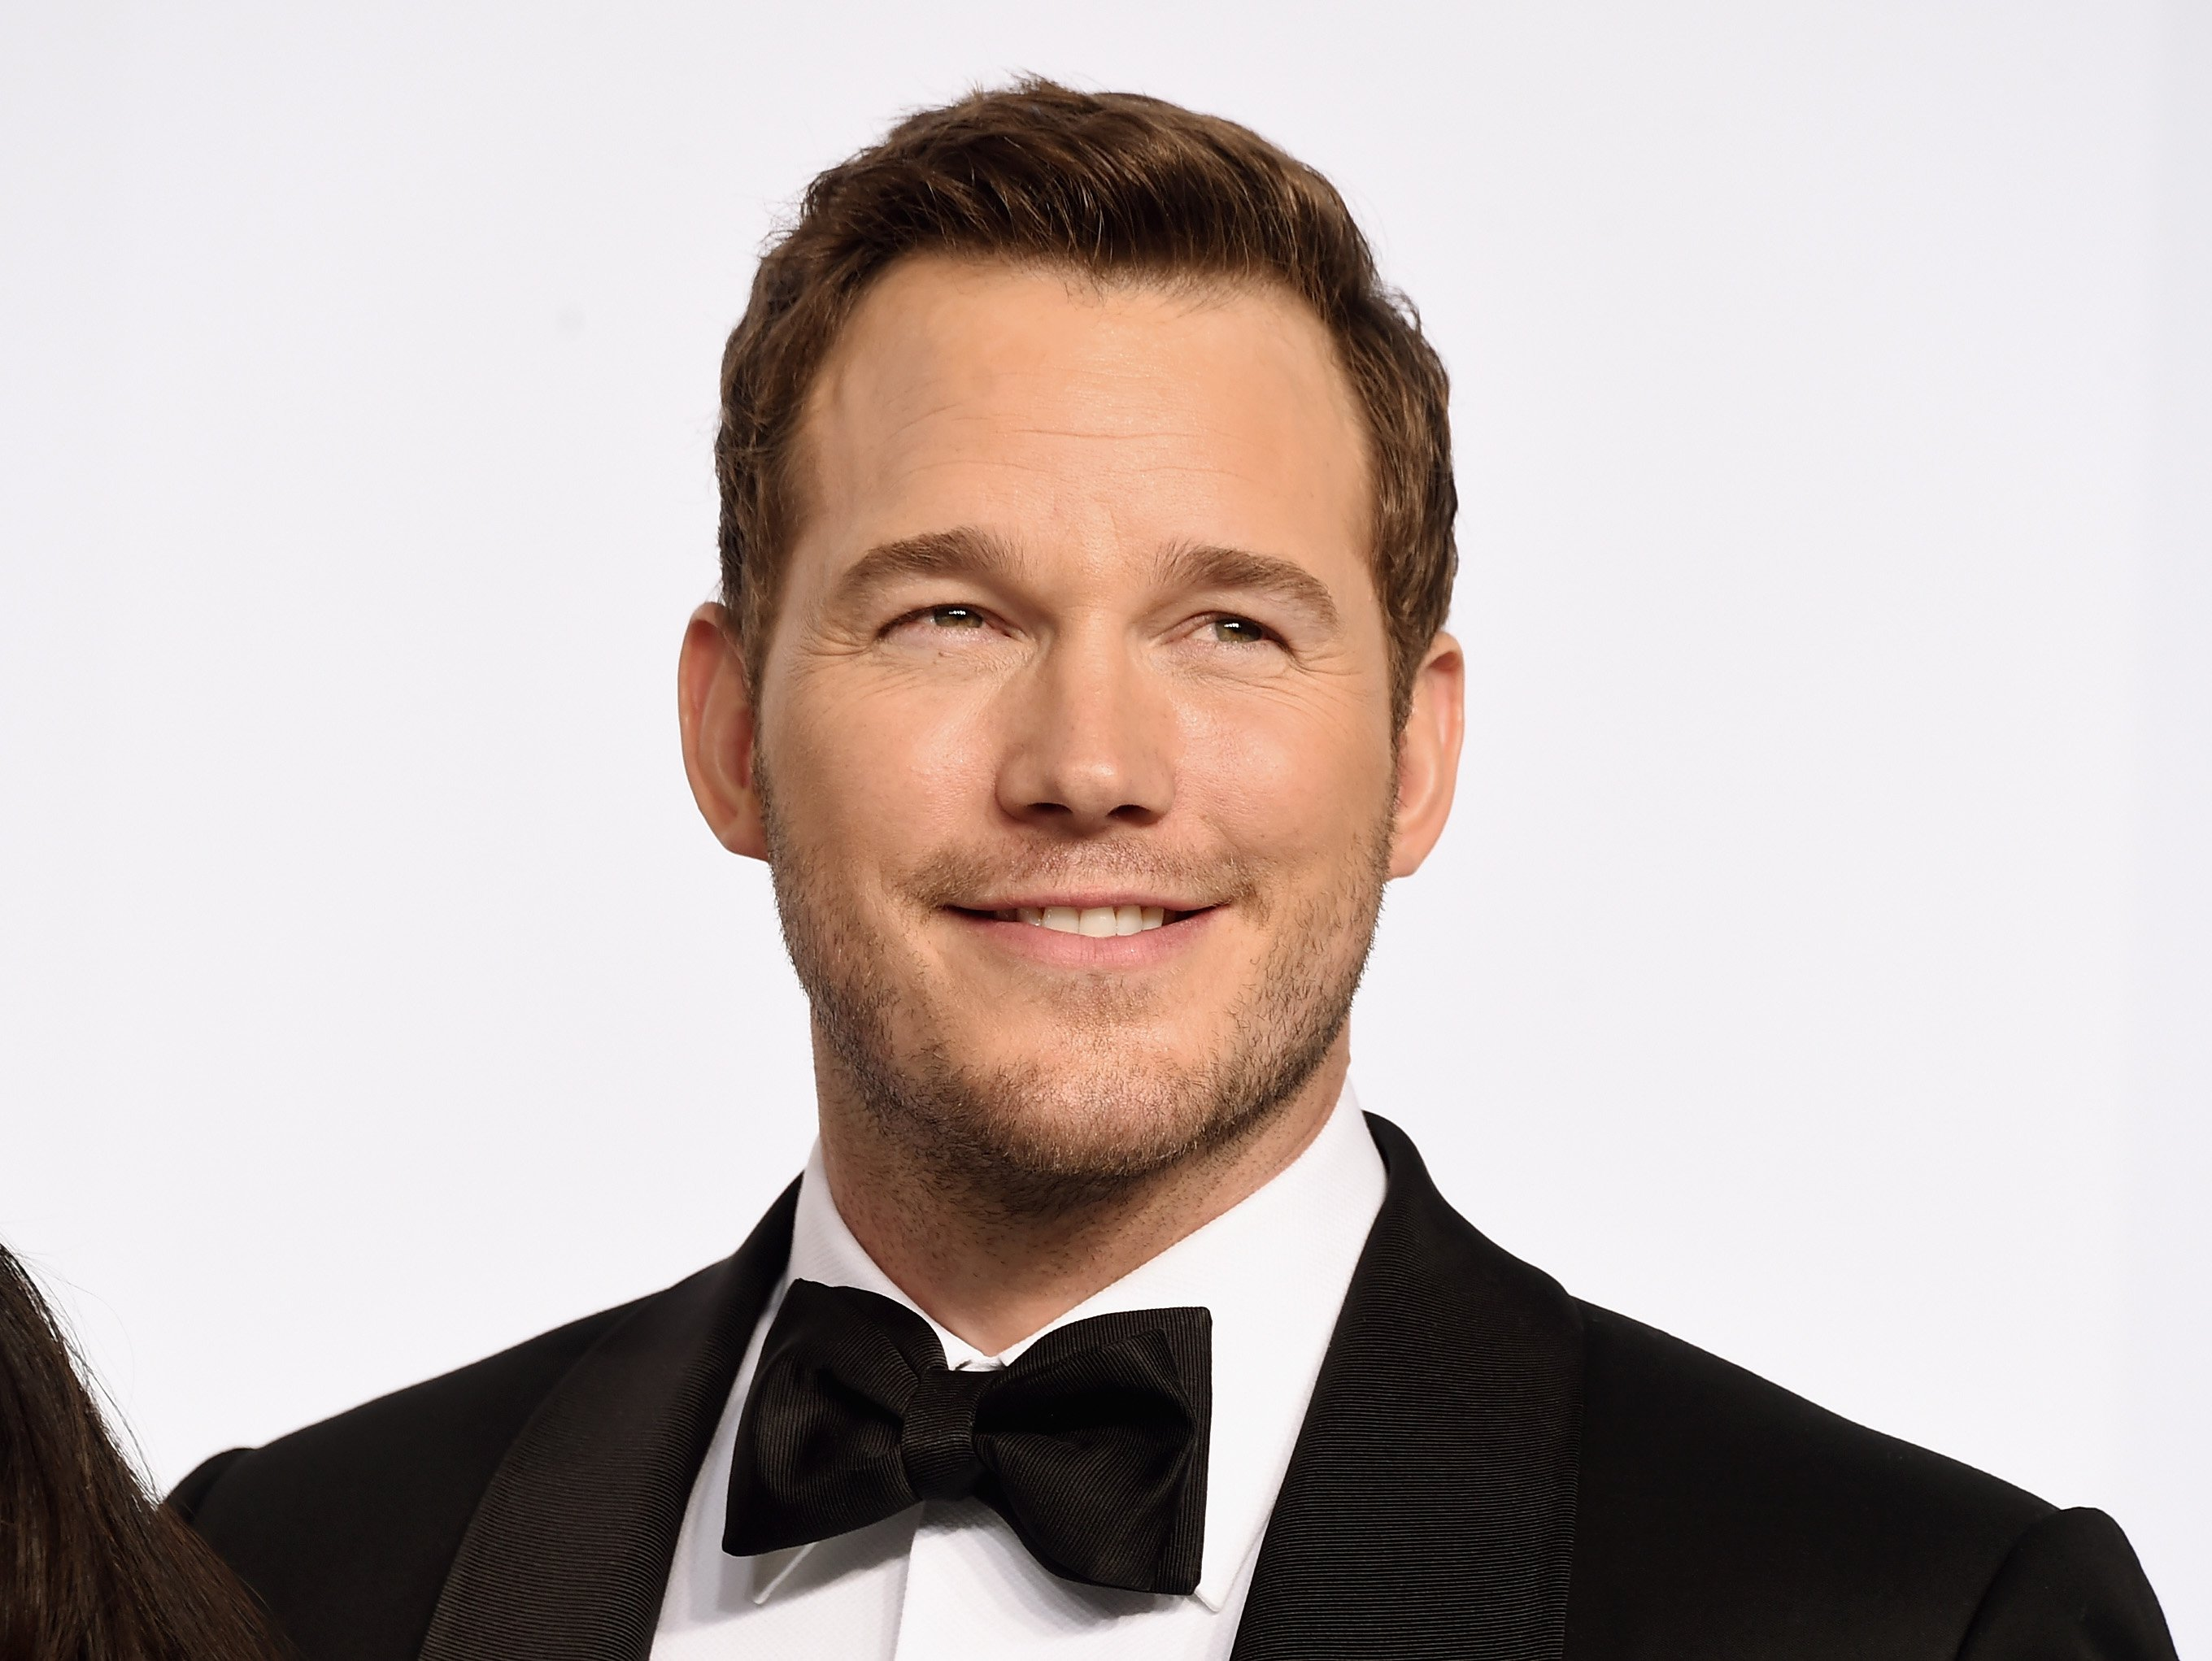 Image Source: Getty Images | Chris Pratt at a red carpet event